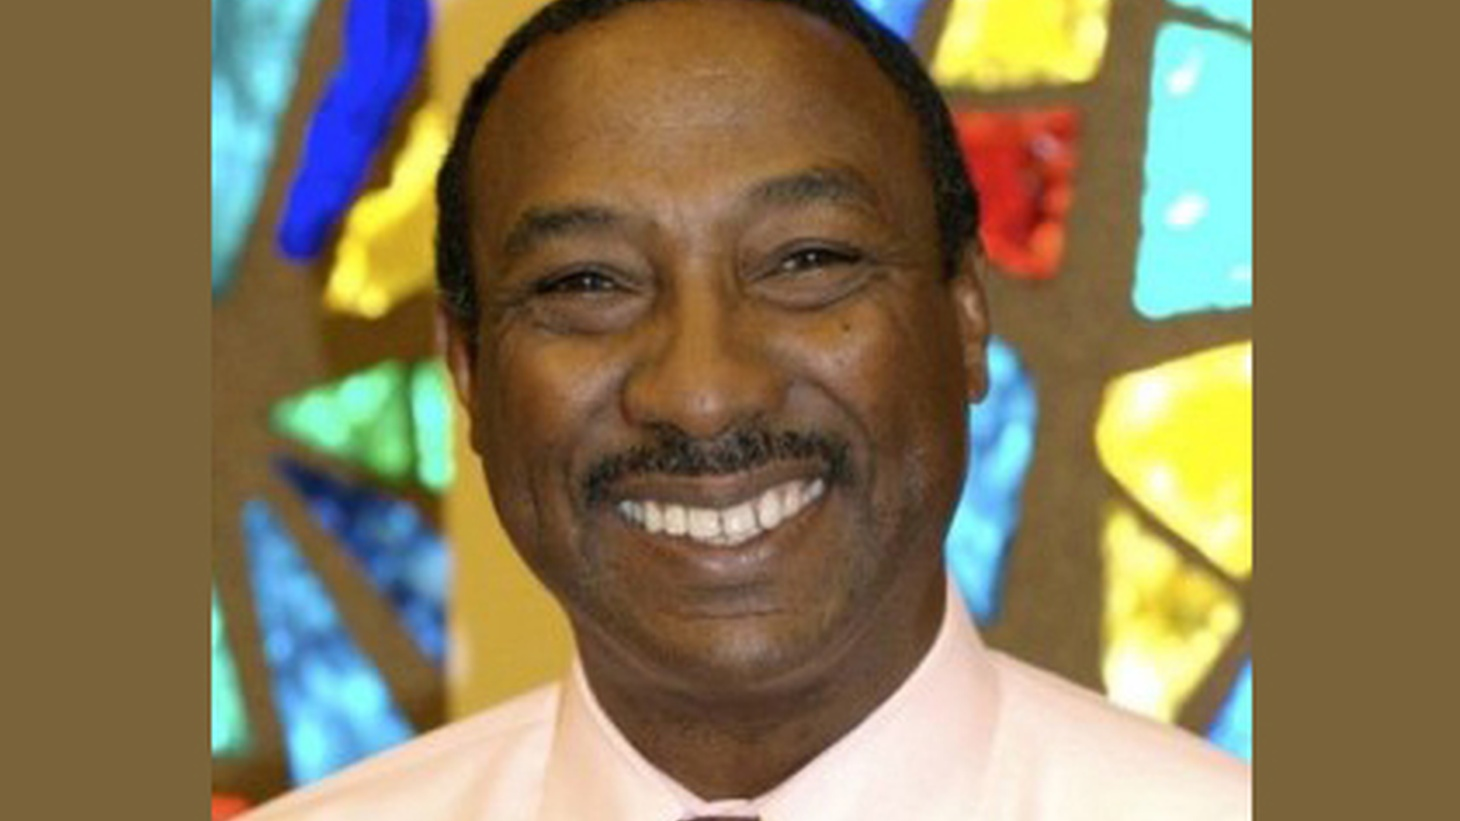 Robert Scheer sits down with Reverend Madison Shockley to discuss his family's history with racism as well as his views on what is means to be Christian today.